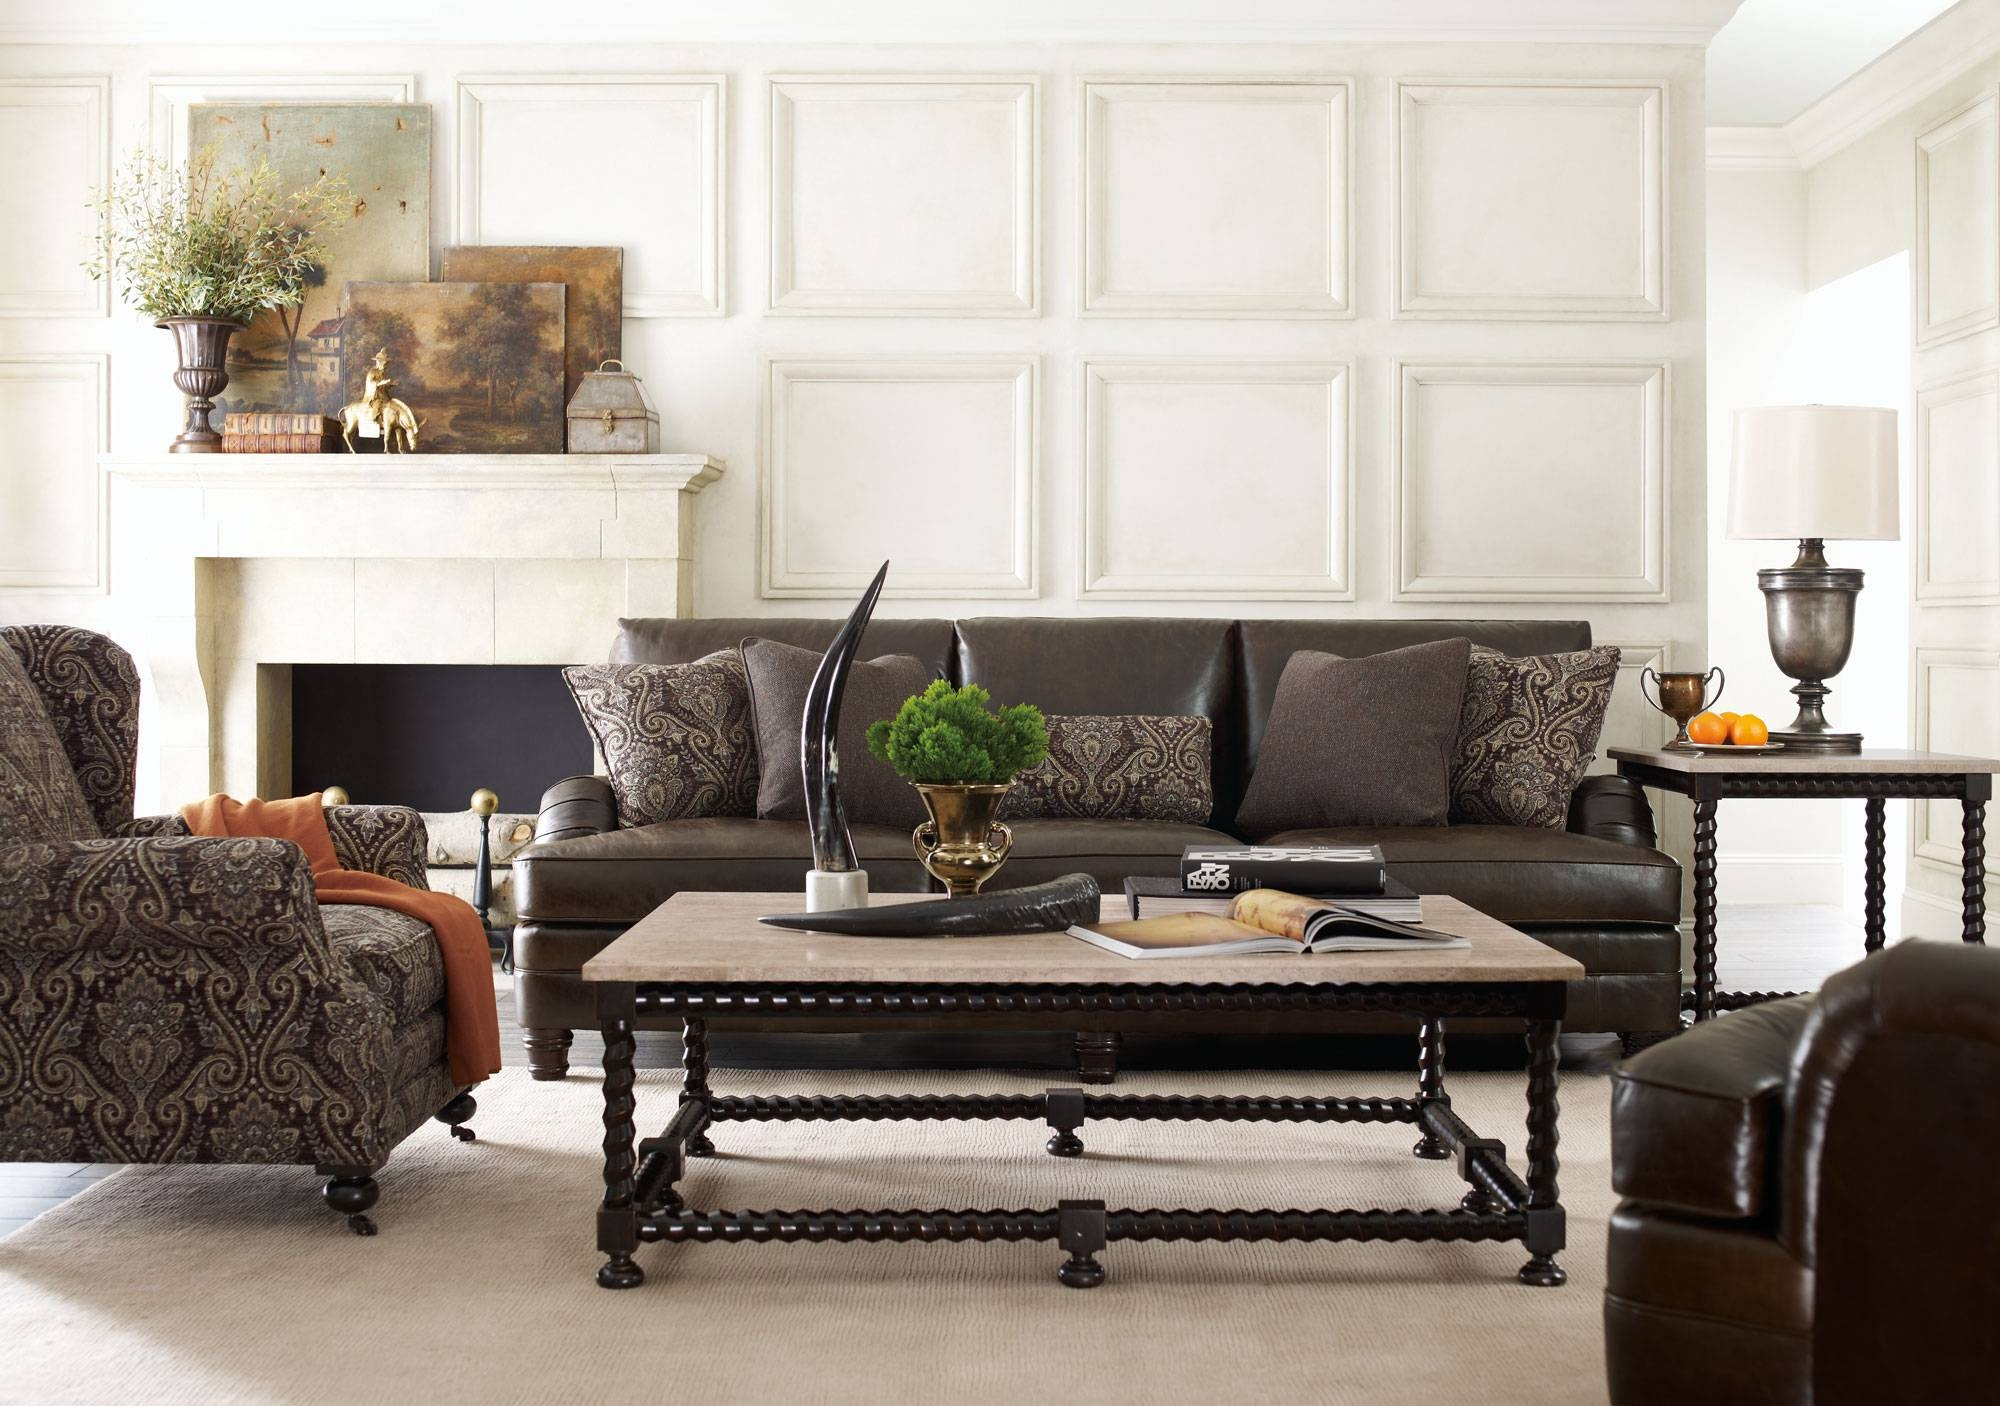 Tarleton Sofa, Justin Chair, Cordova Tables | Bernhardt within Bernhardt Tarleton Sofas (Image 15 of 15)